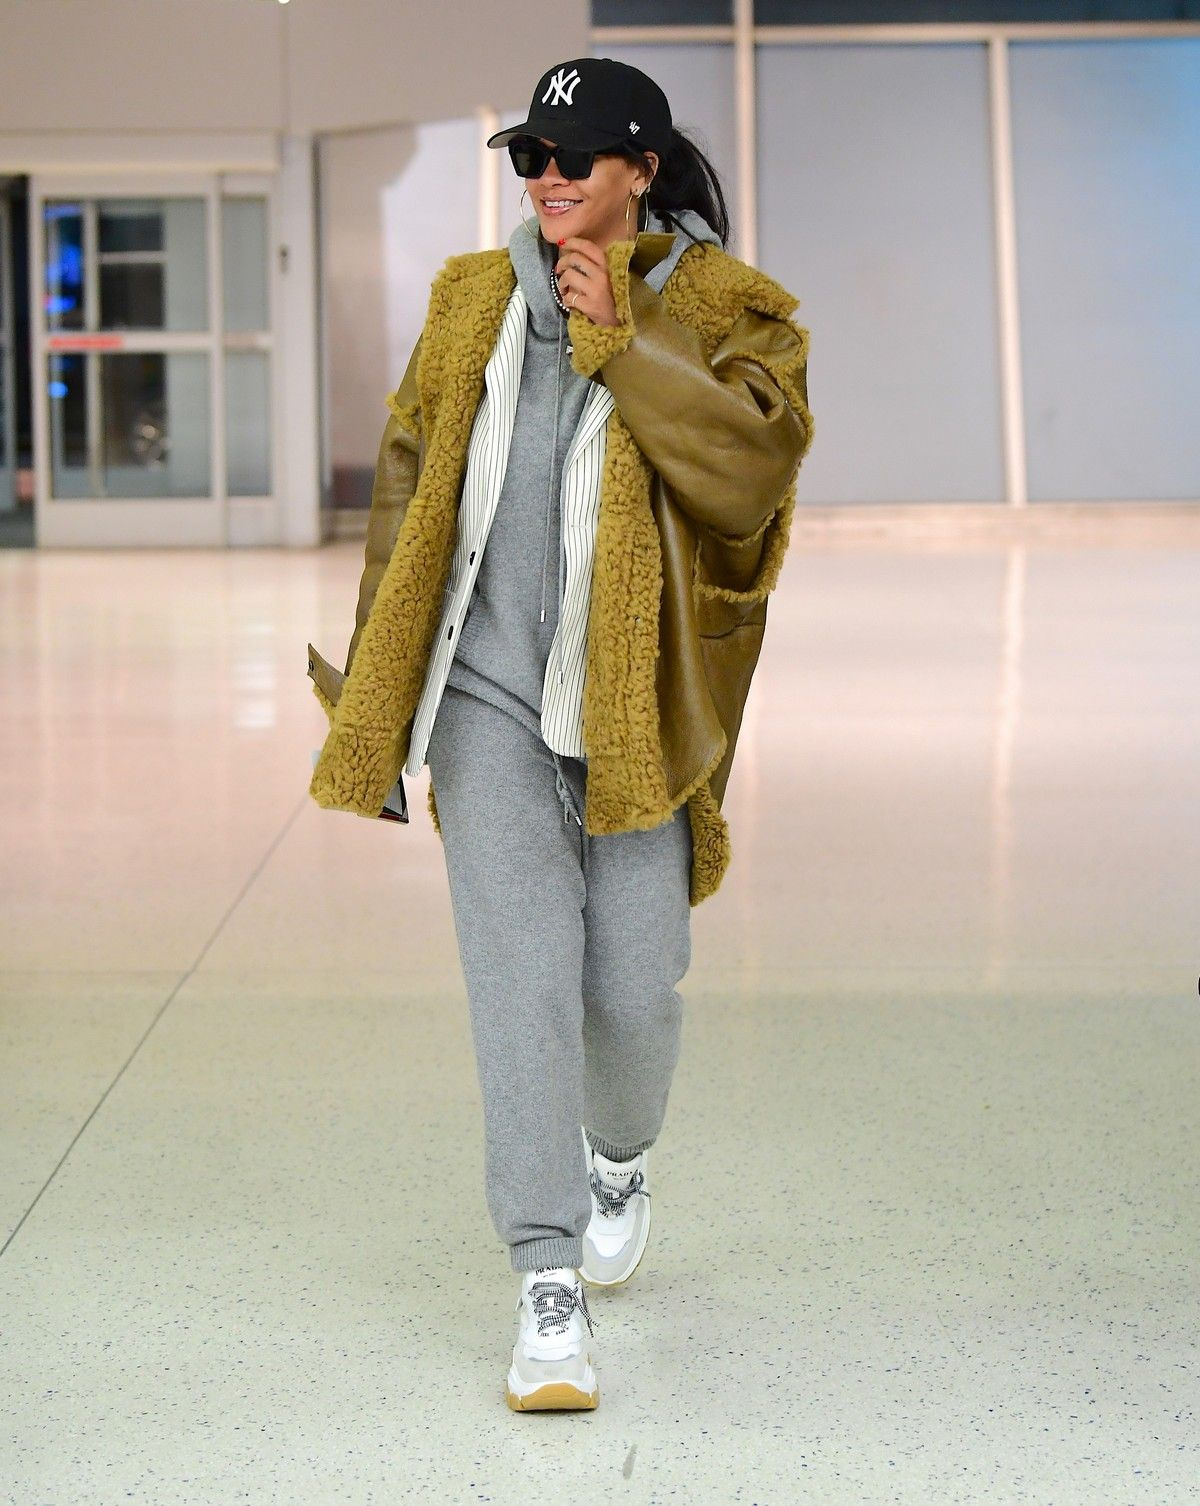 Rihanna in Stylish Jacket leaves at the airport in Teaneck, New Jersey 2019/11/29 - Celebskart